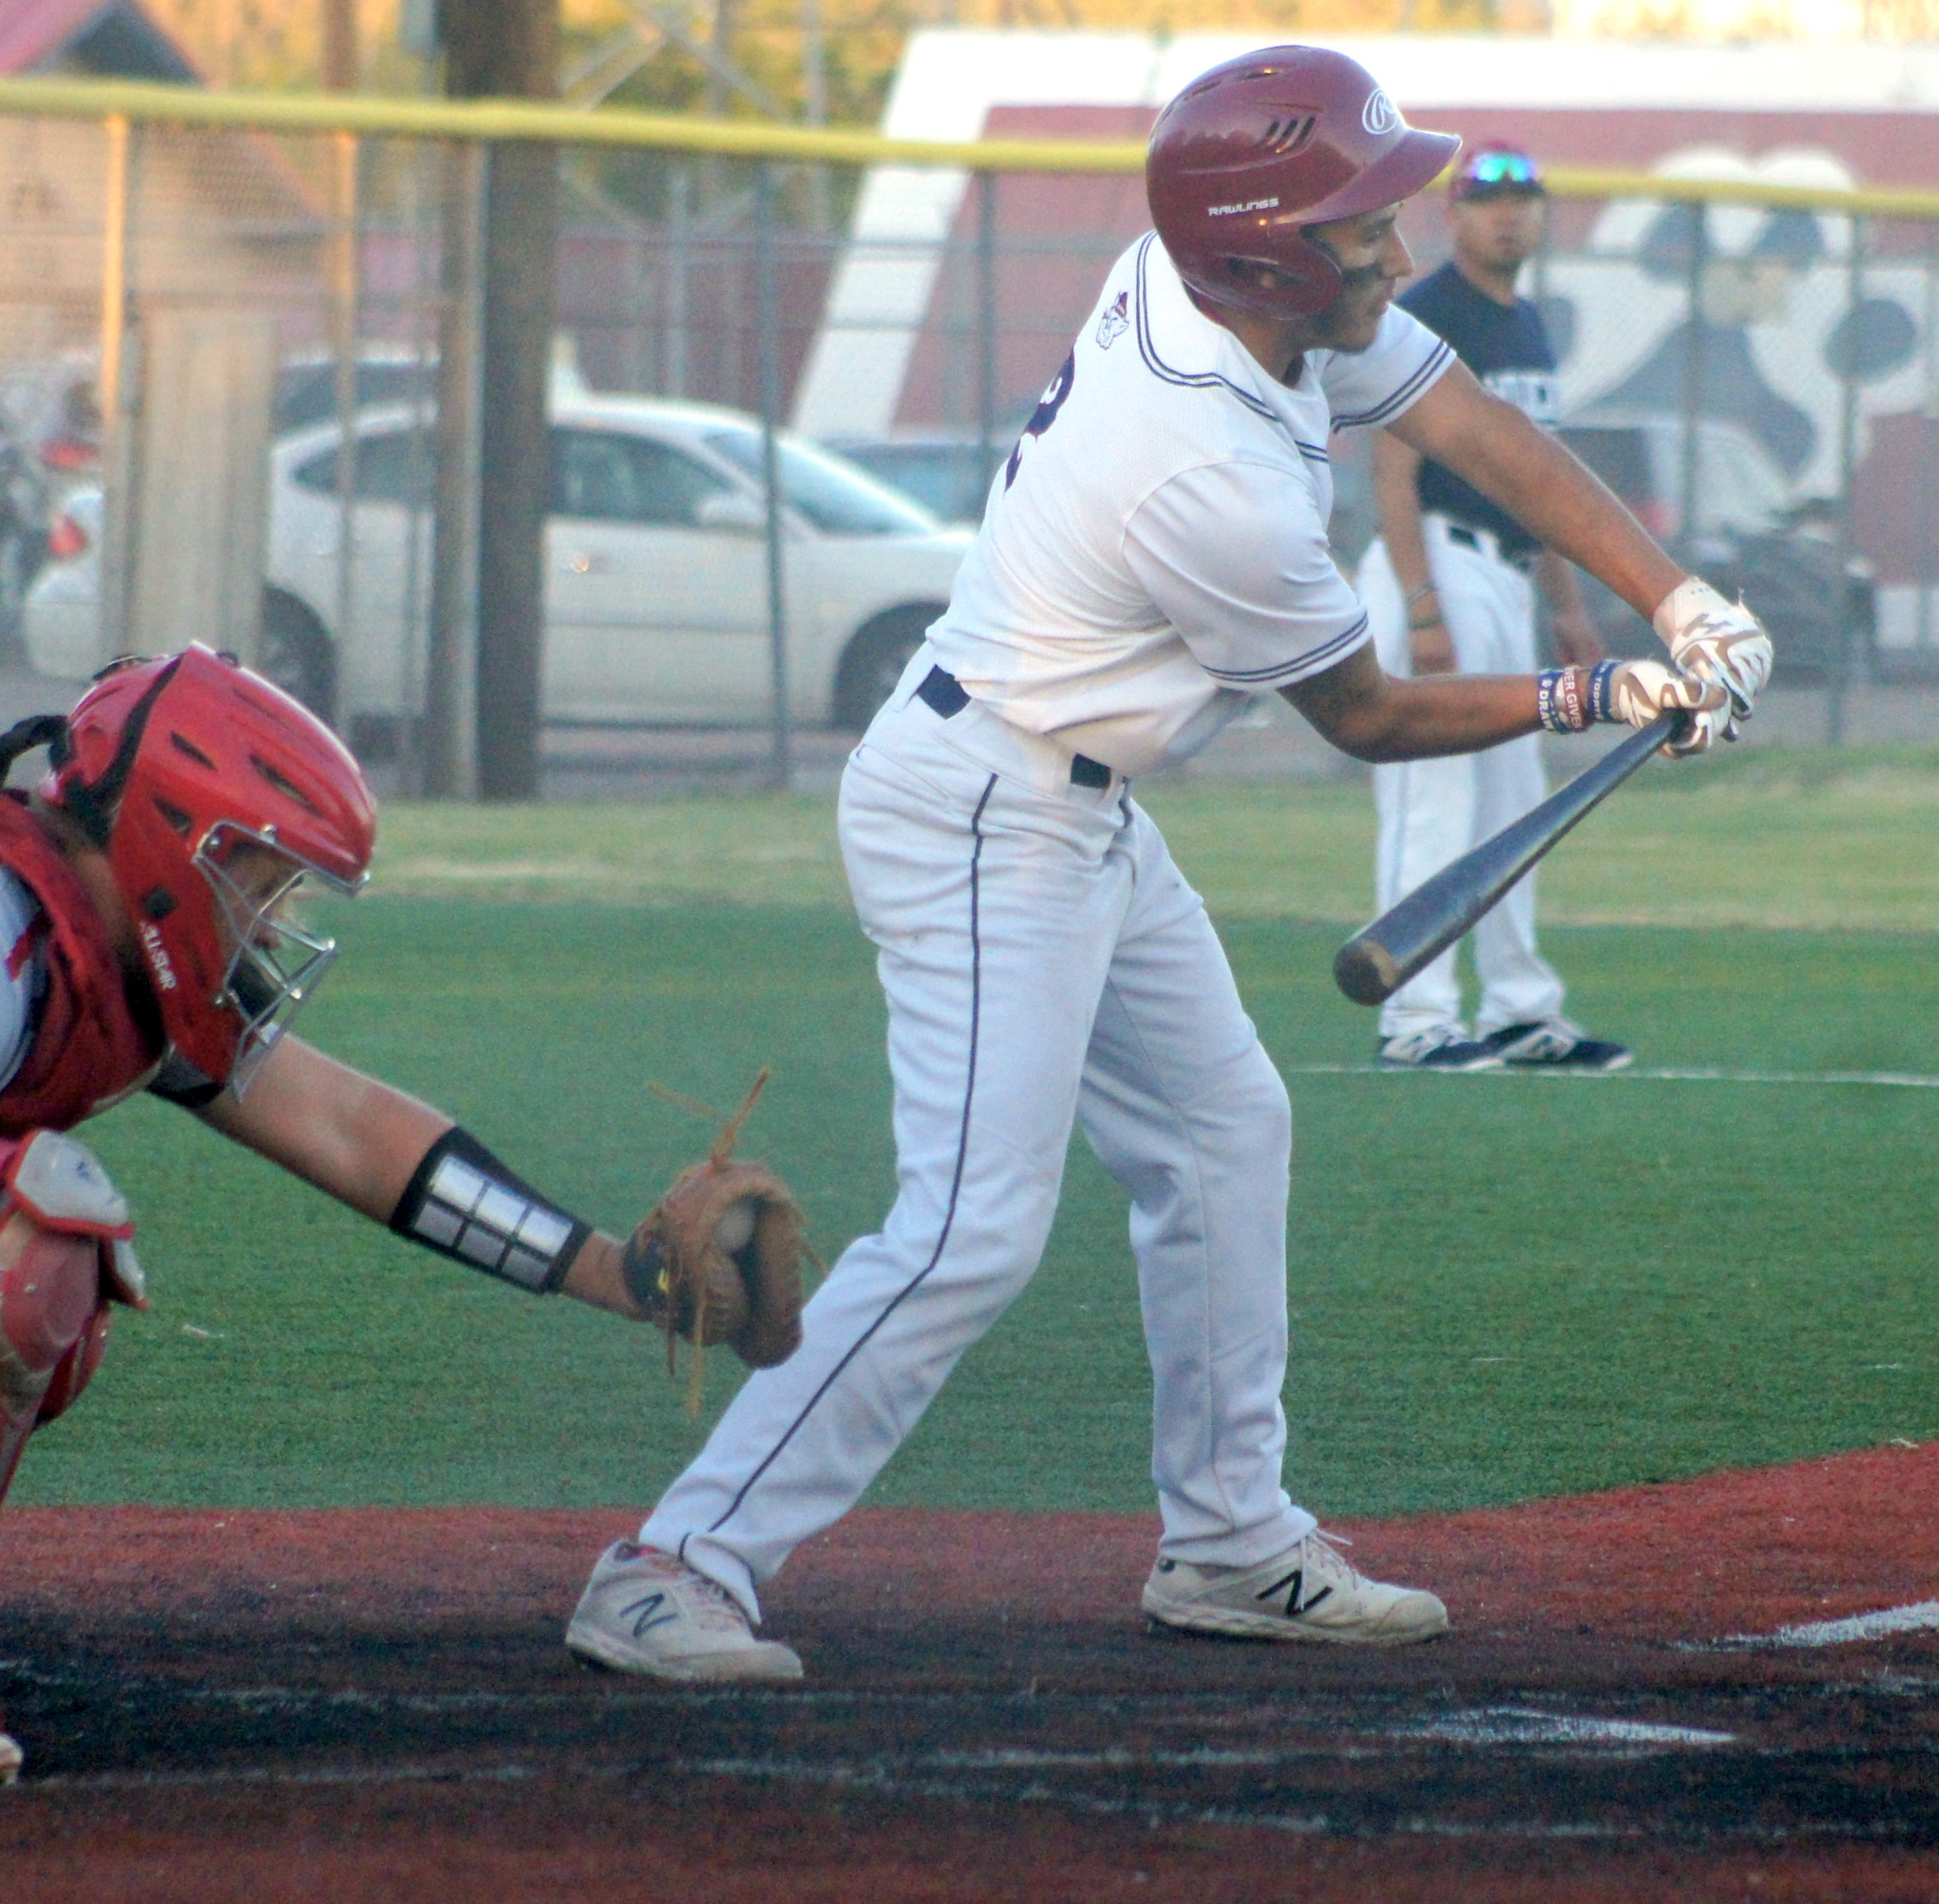 Centennial Hawks sweep Deming Wildcats in a pair of District 3-5A baseball games